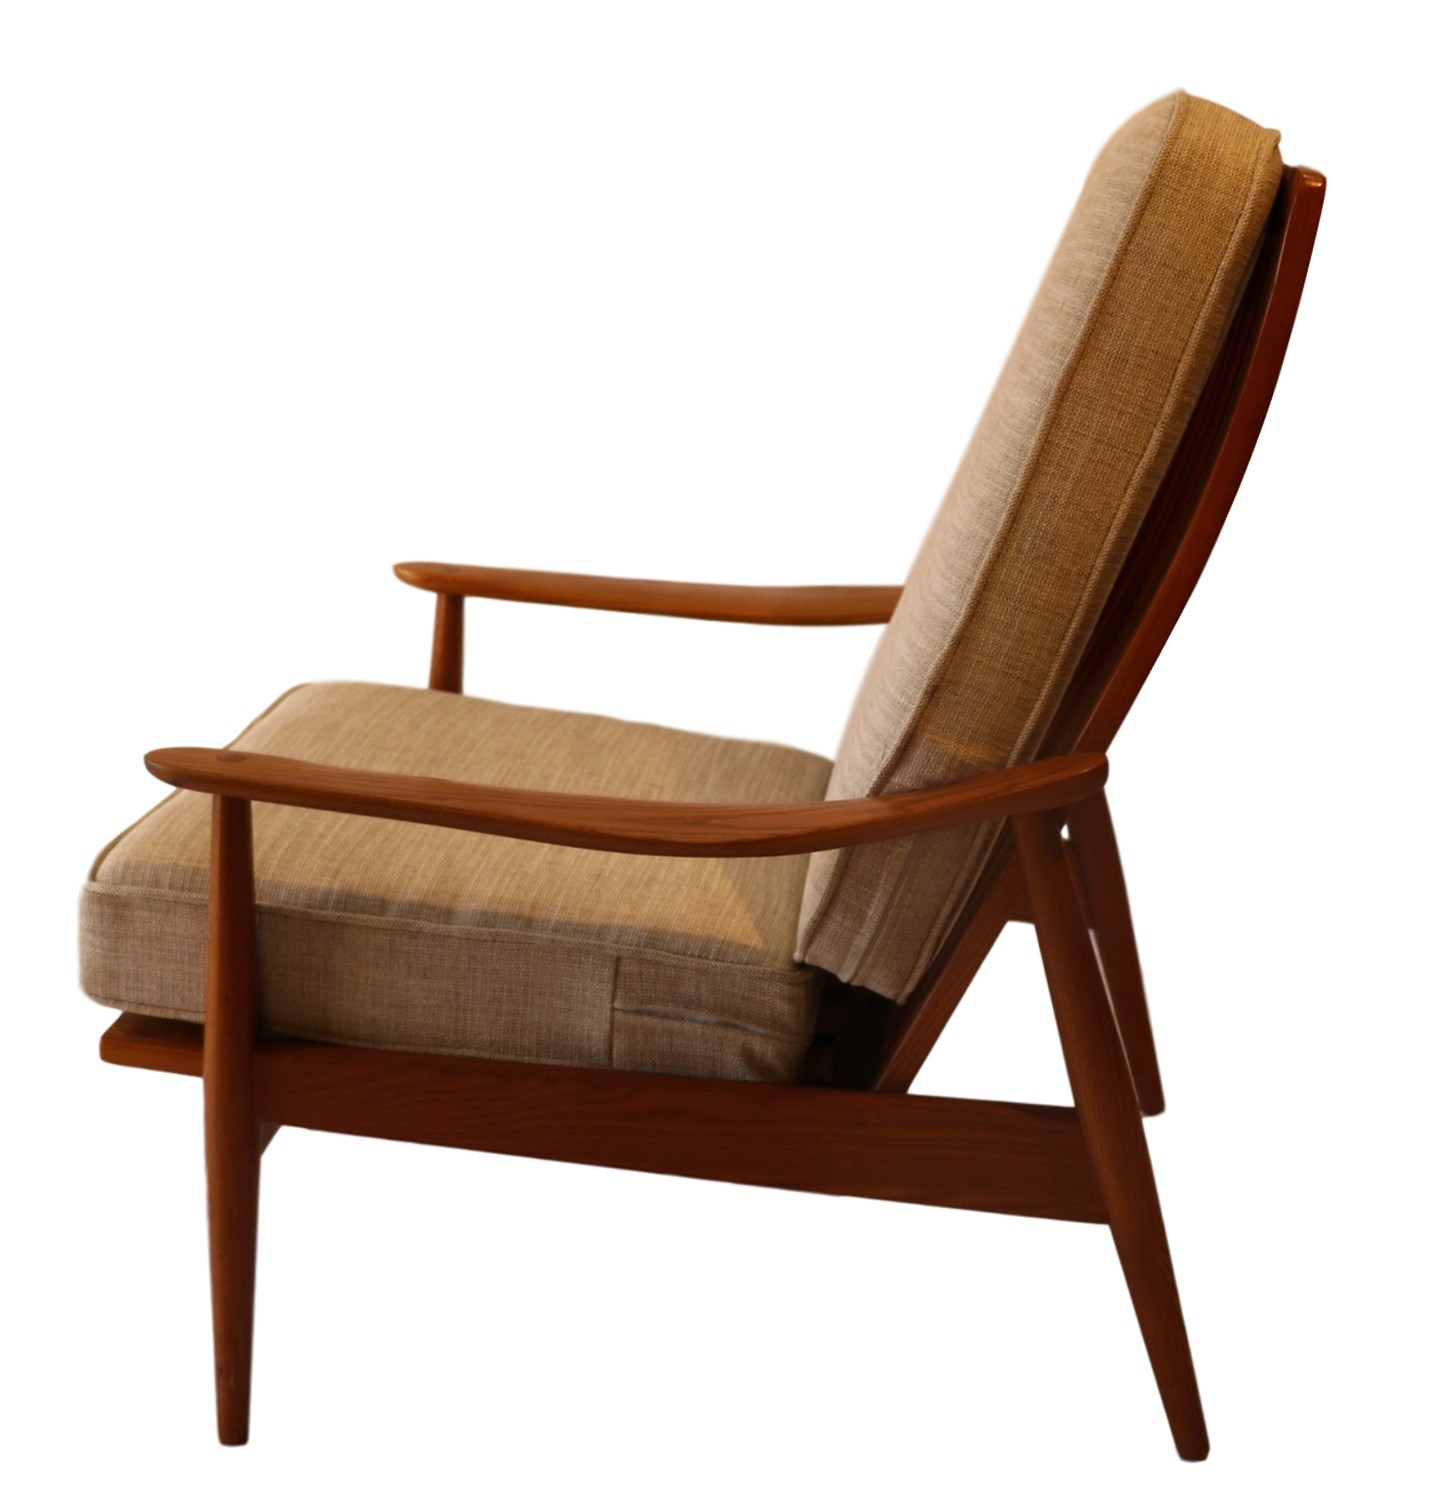 Midcentury Chairs Mid Century Modern Teak High Back Lounge Chair